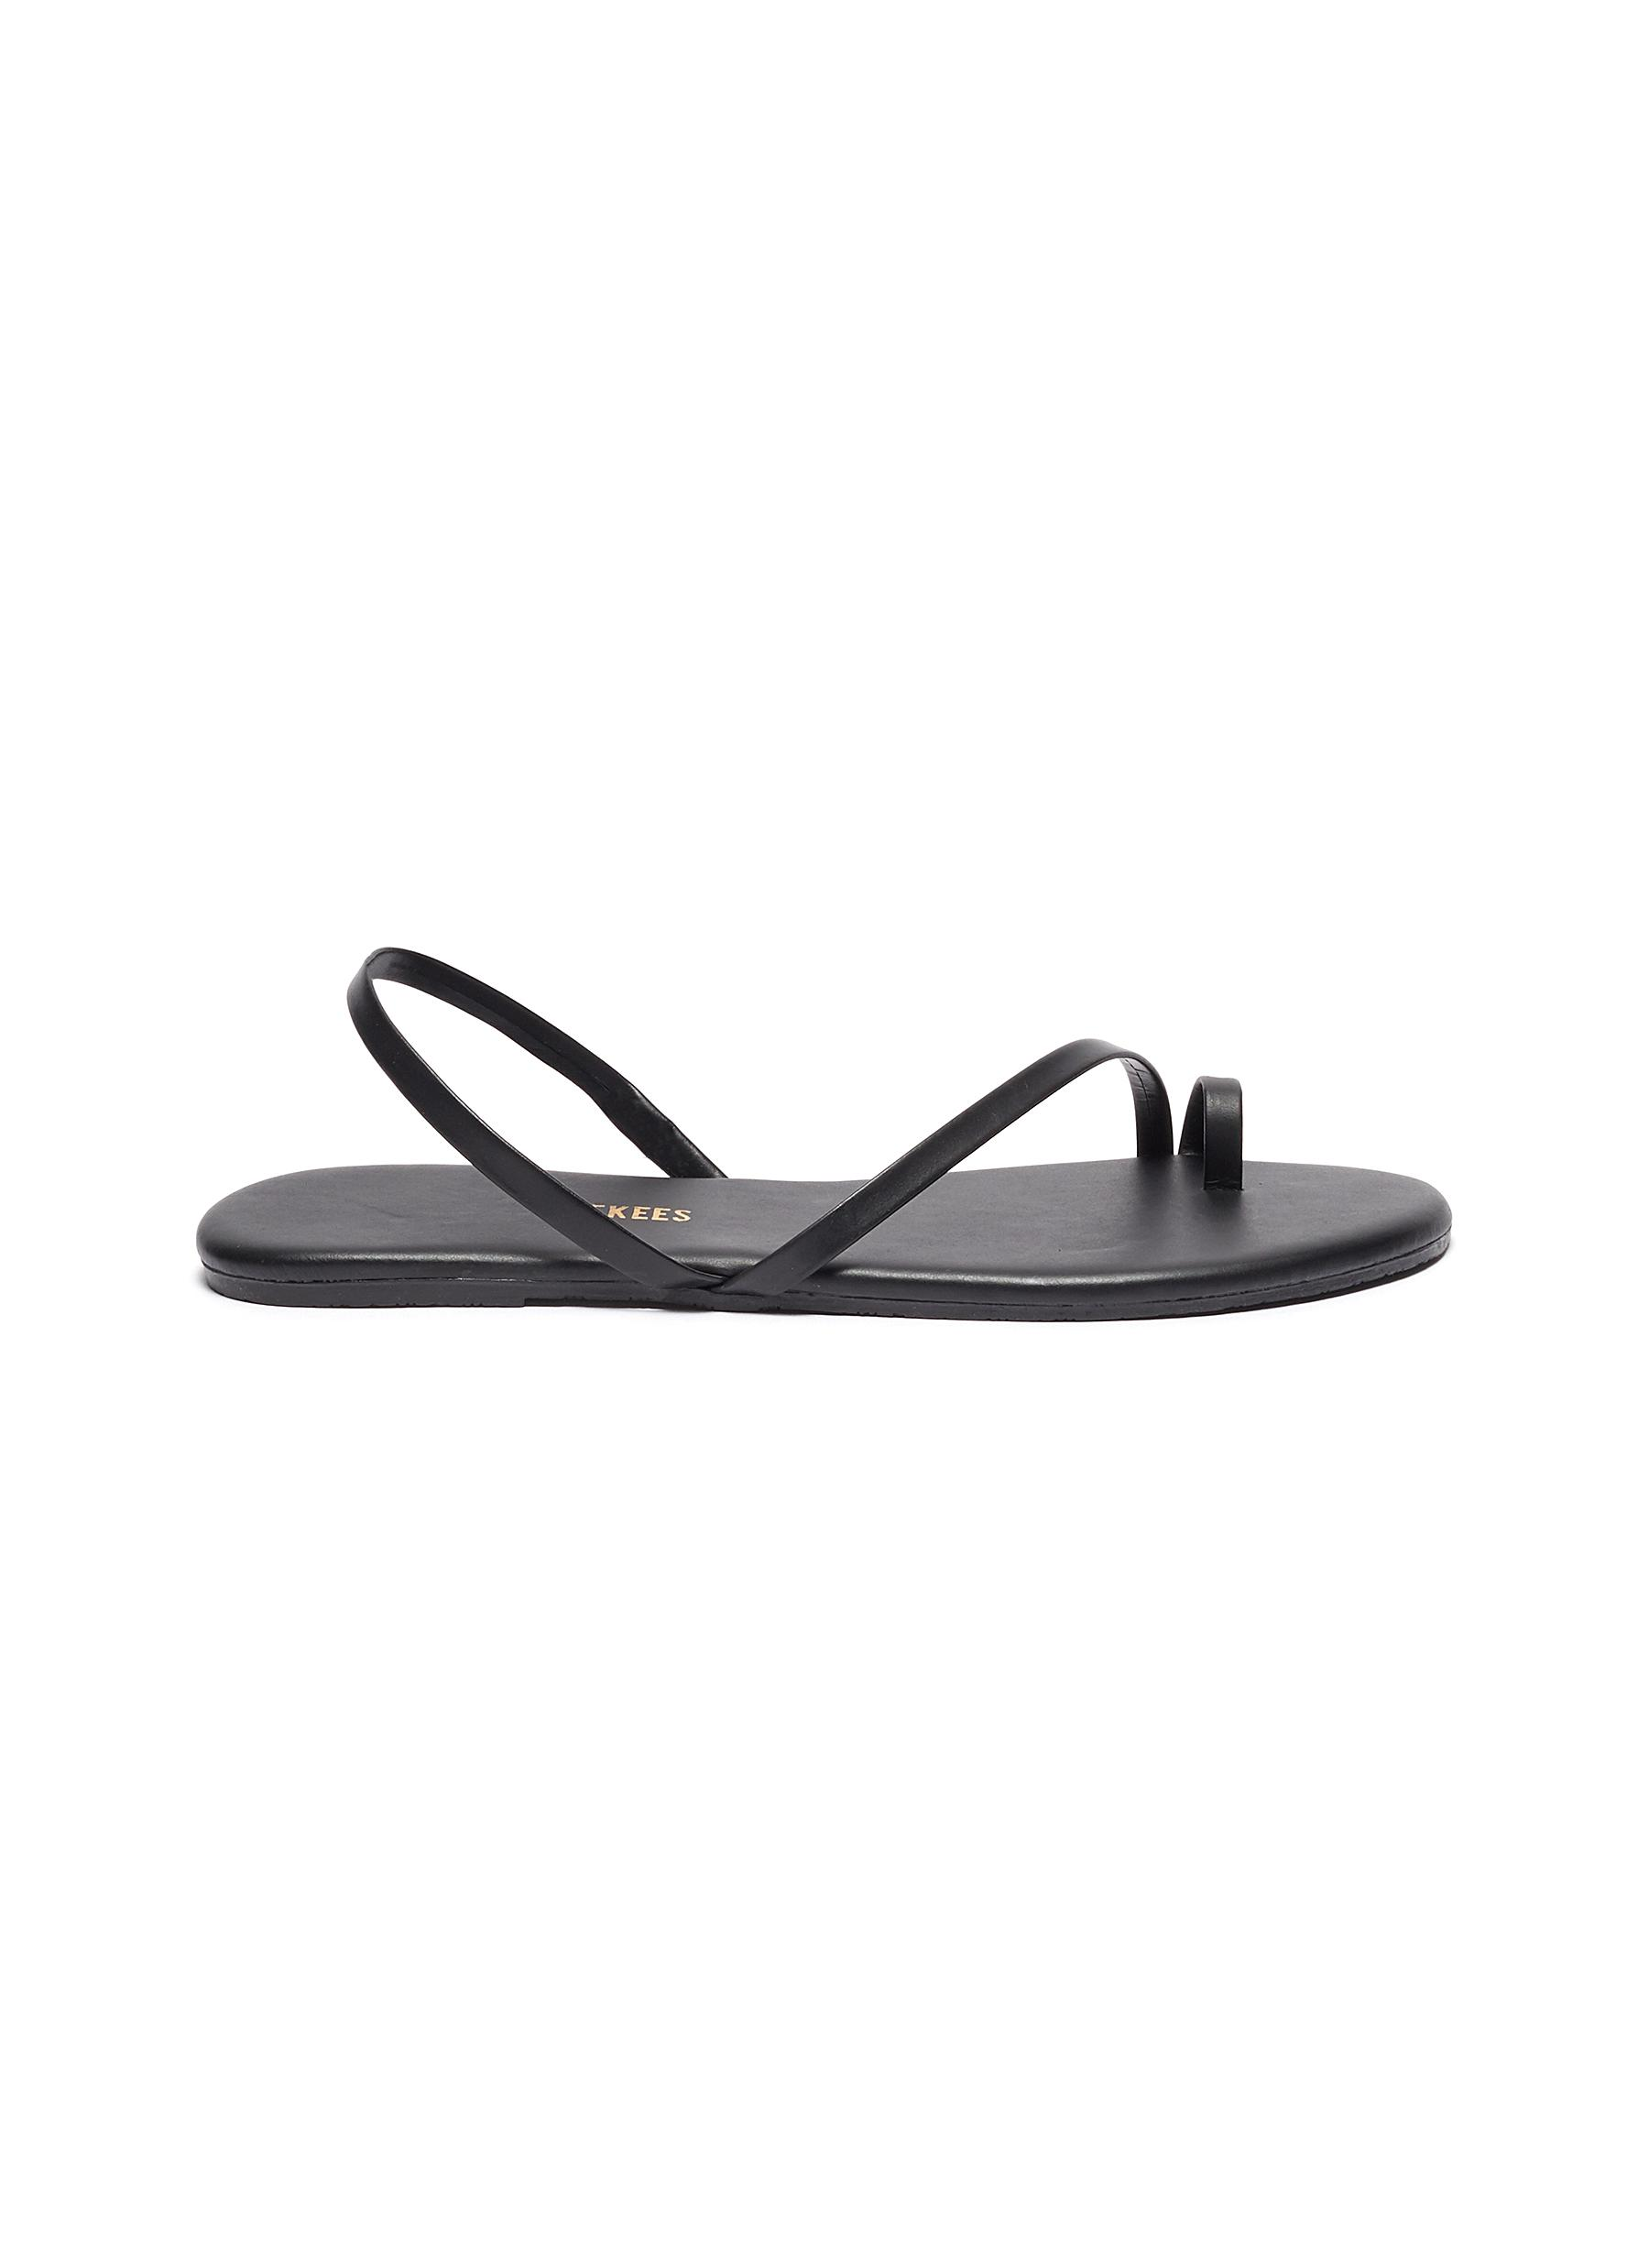 Tkees Flats LC leather sandals